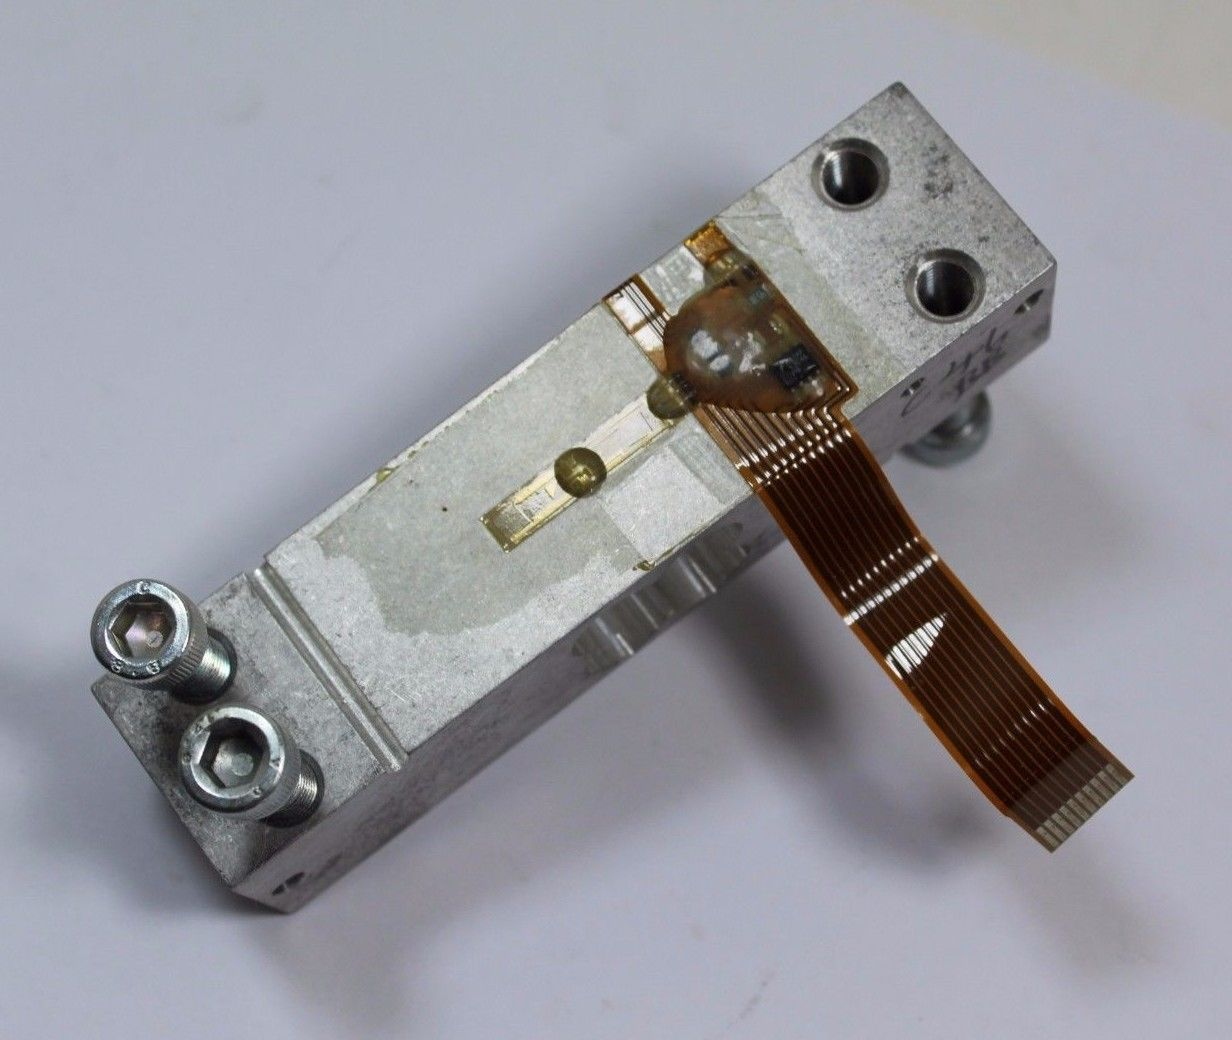 Load Cell Replacement for Mettler Toledo PS60 Shipping Scale 150lb x 0.05lb